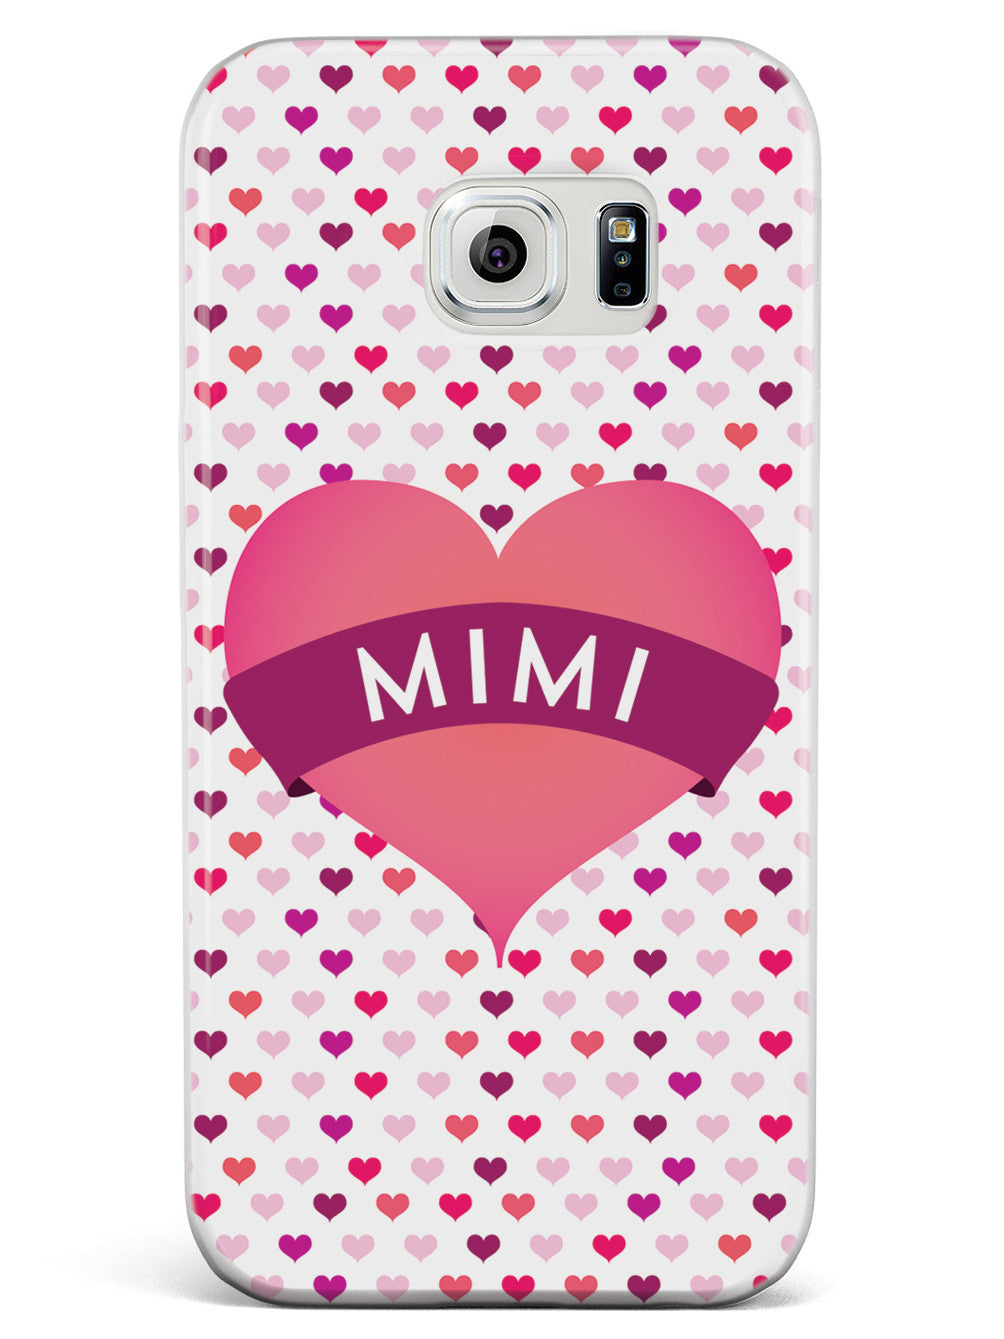 Mimi Heart for Grandma Case